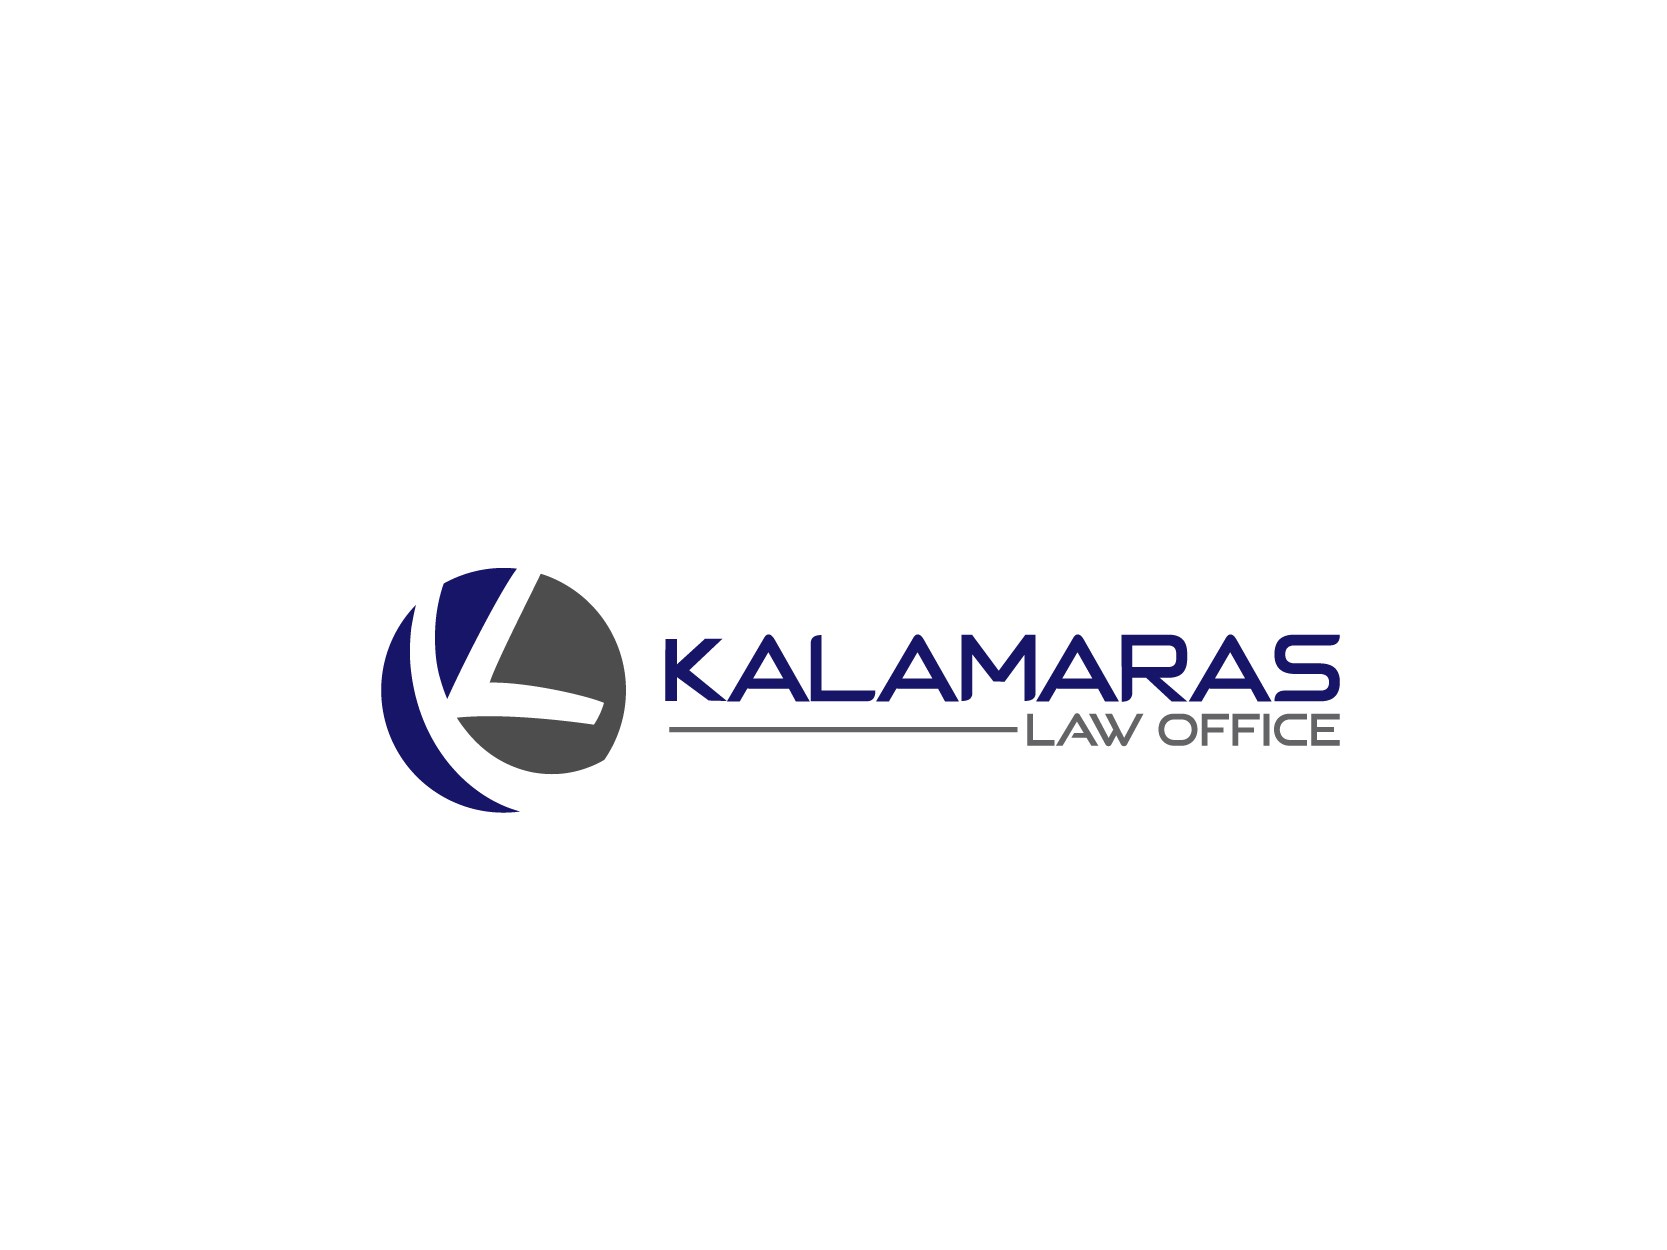 KLO Law Firm Logo - Law Logo